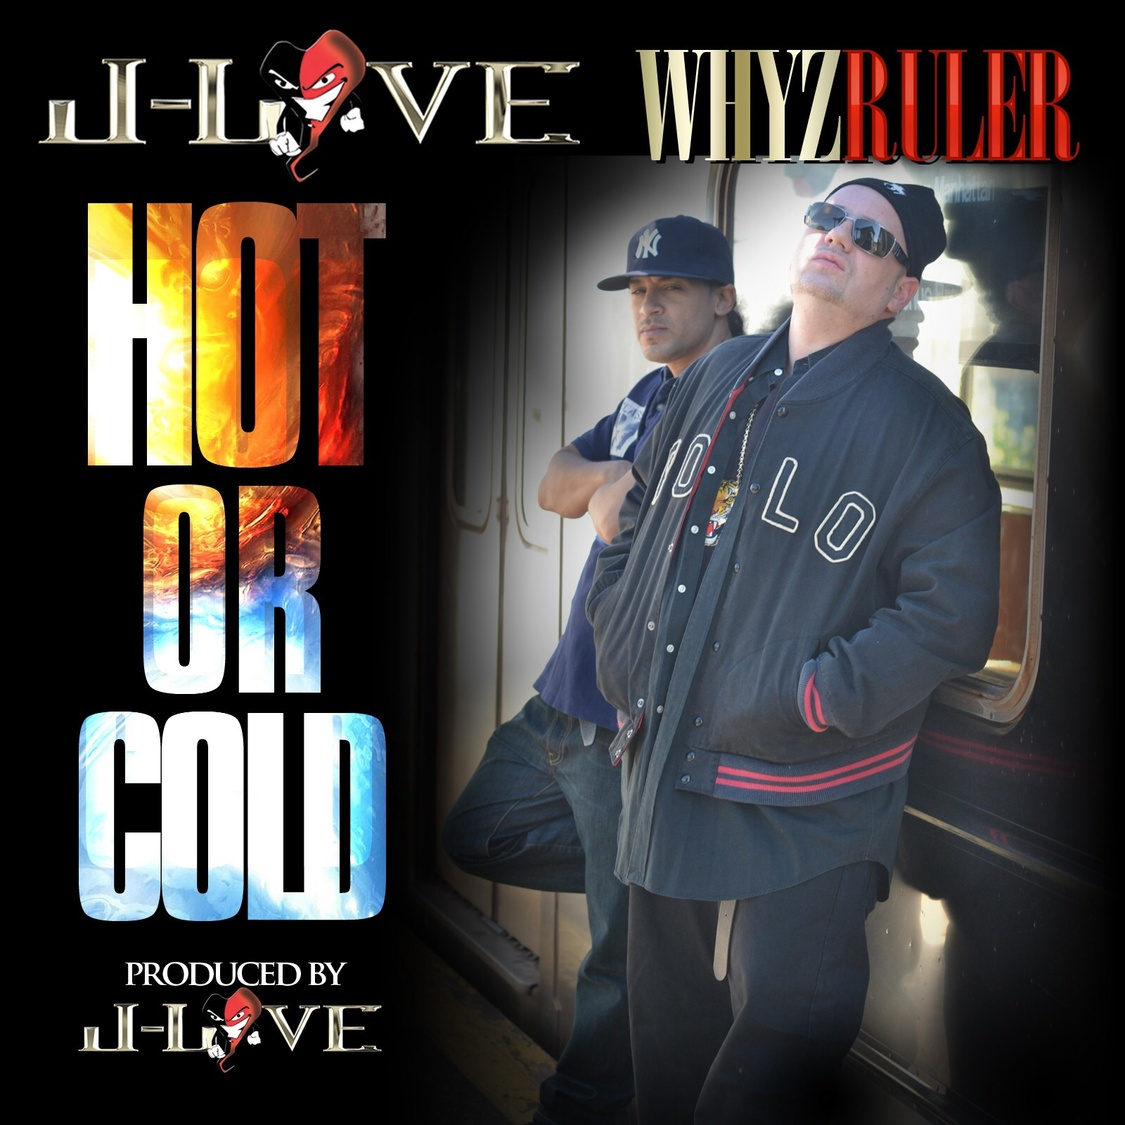 J-LOVE & WHYZ RULER – HE EXISTS Review